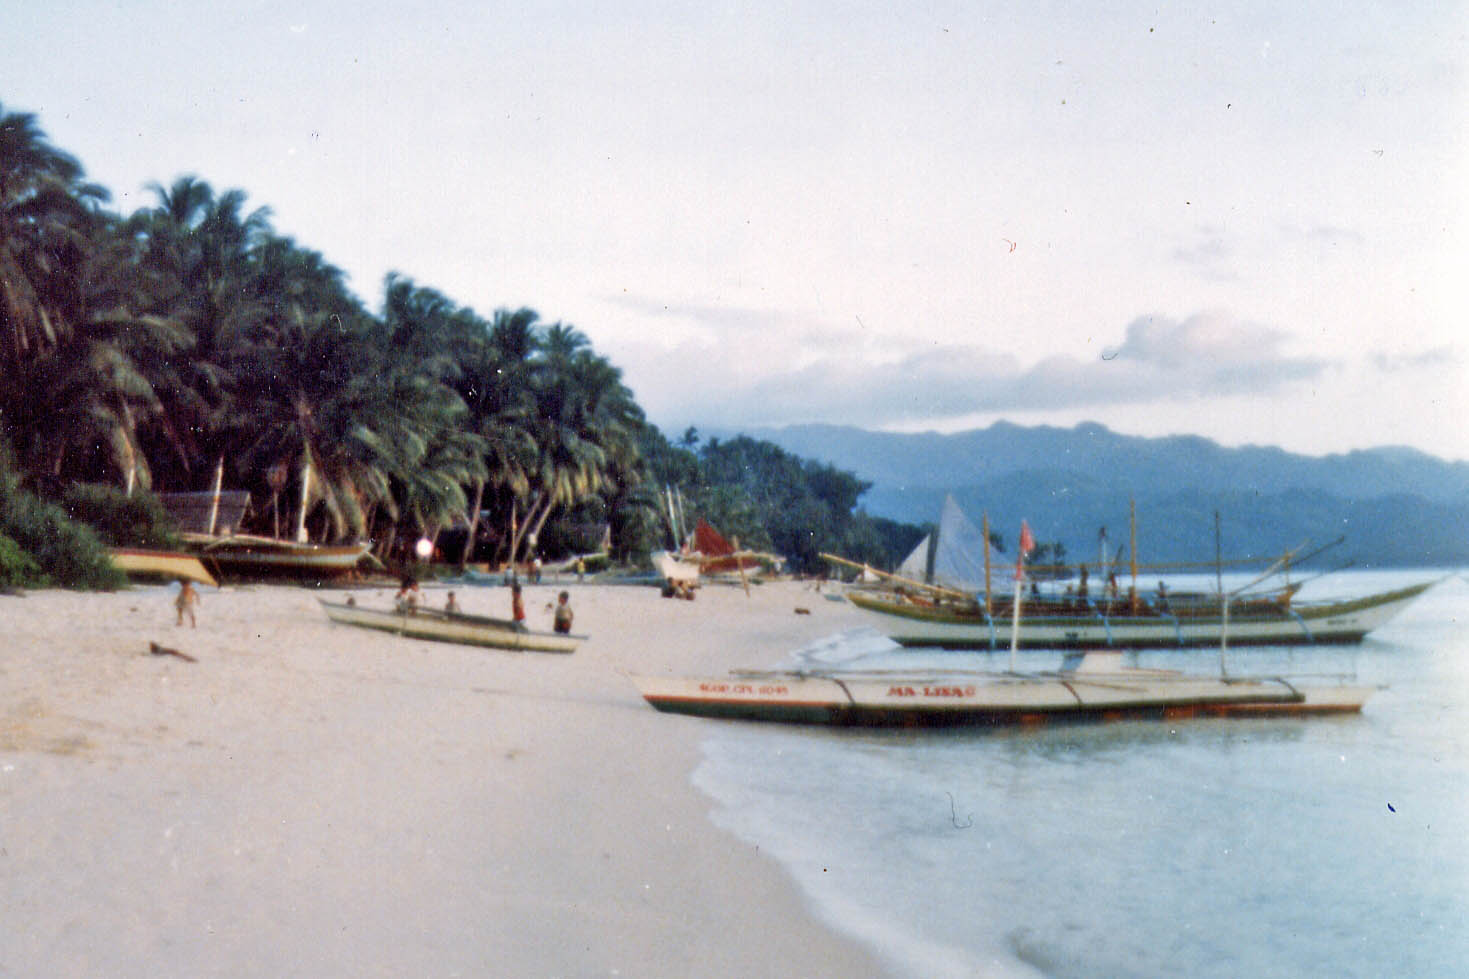 Beach of Boracay 1984